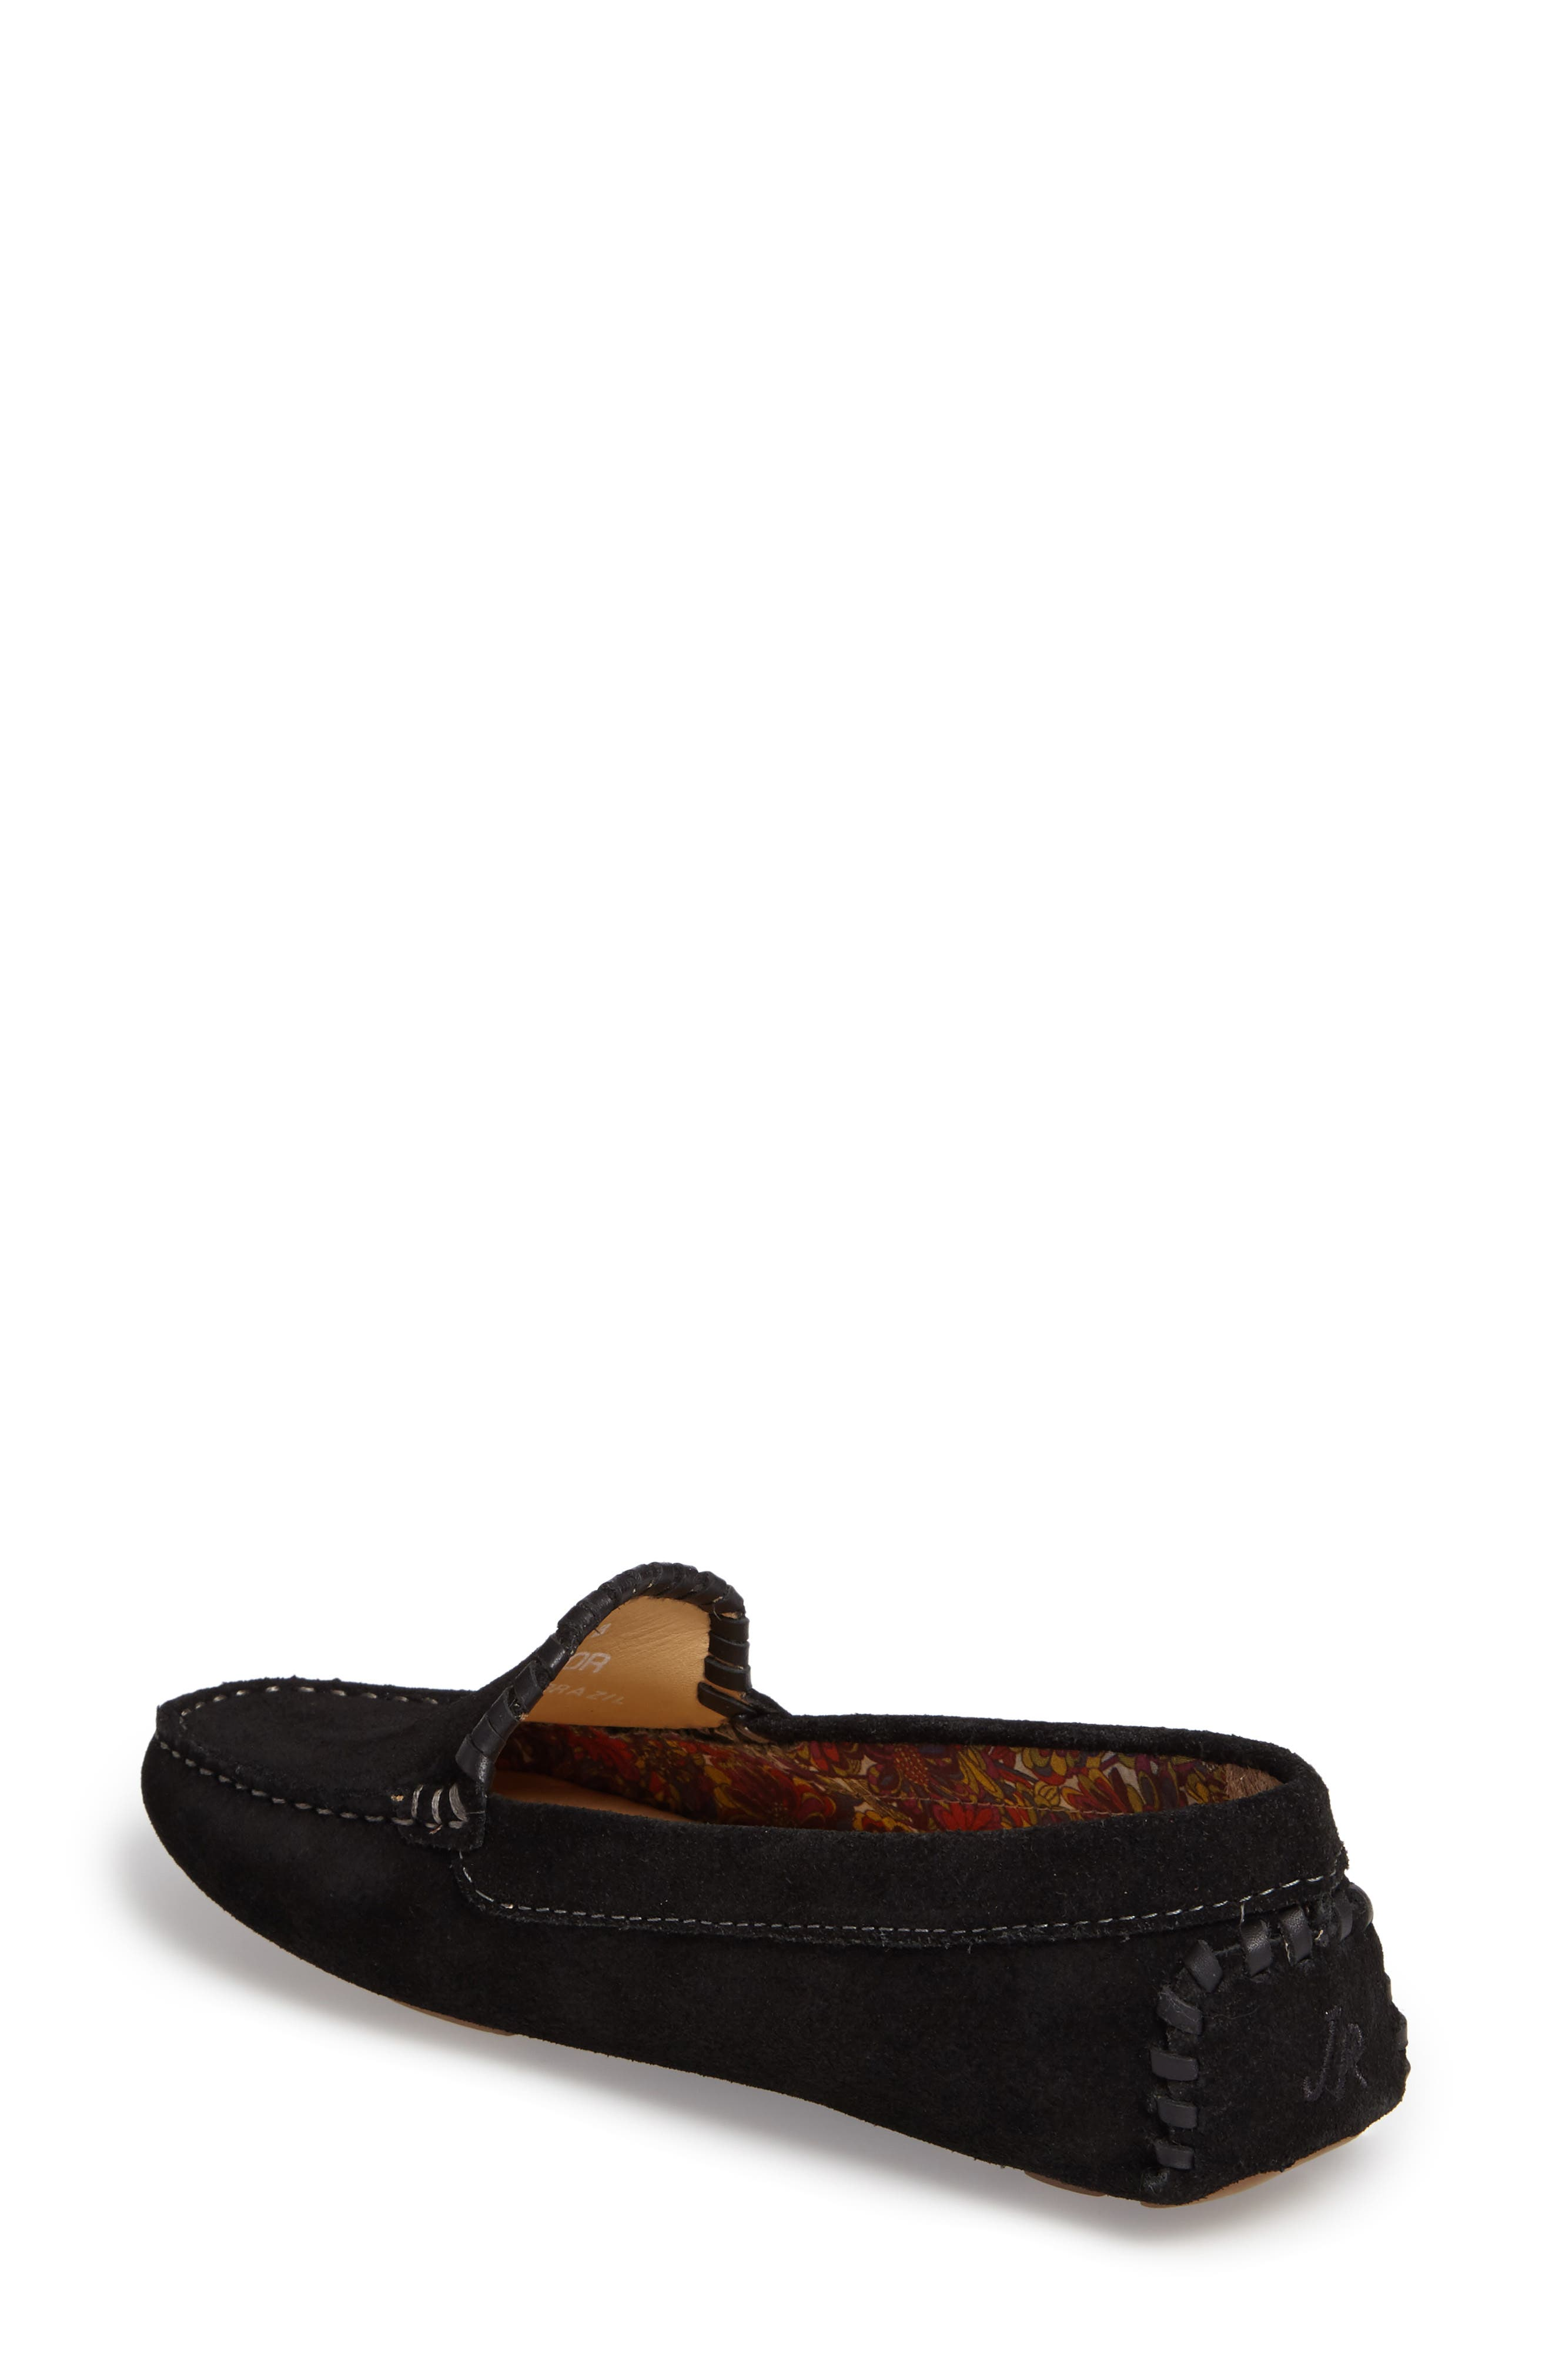 Taylor Driving Loafer,                             Alternate thumbnail 2, color,                             Black Suede